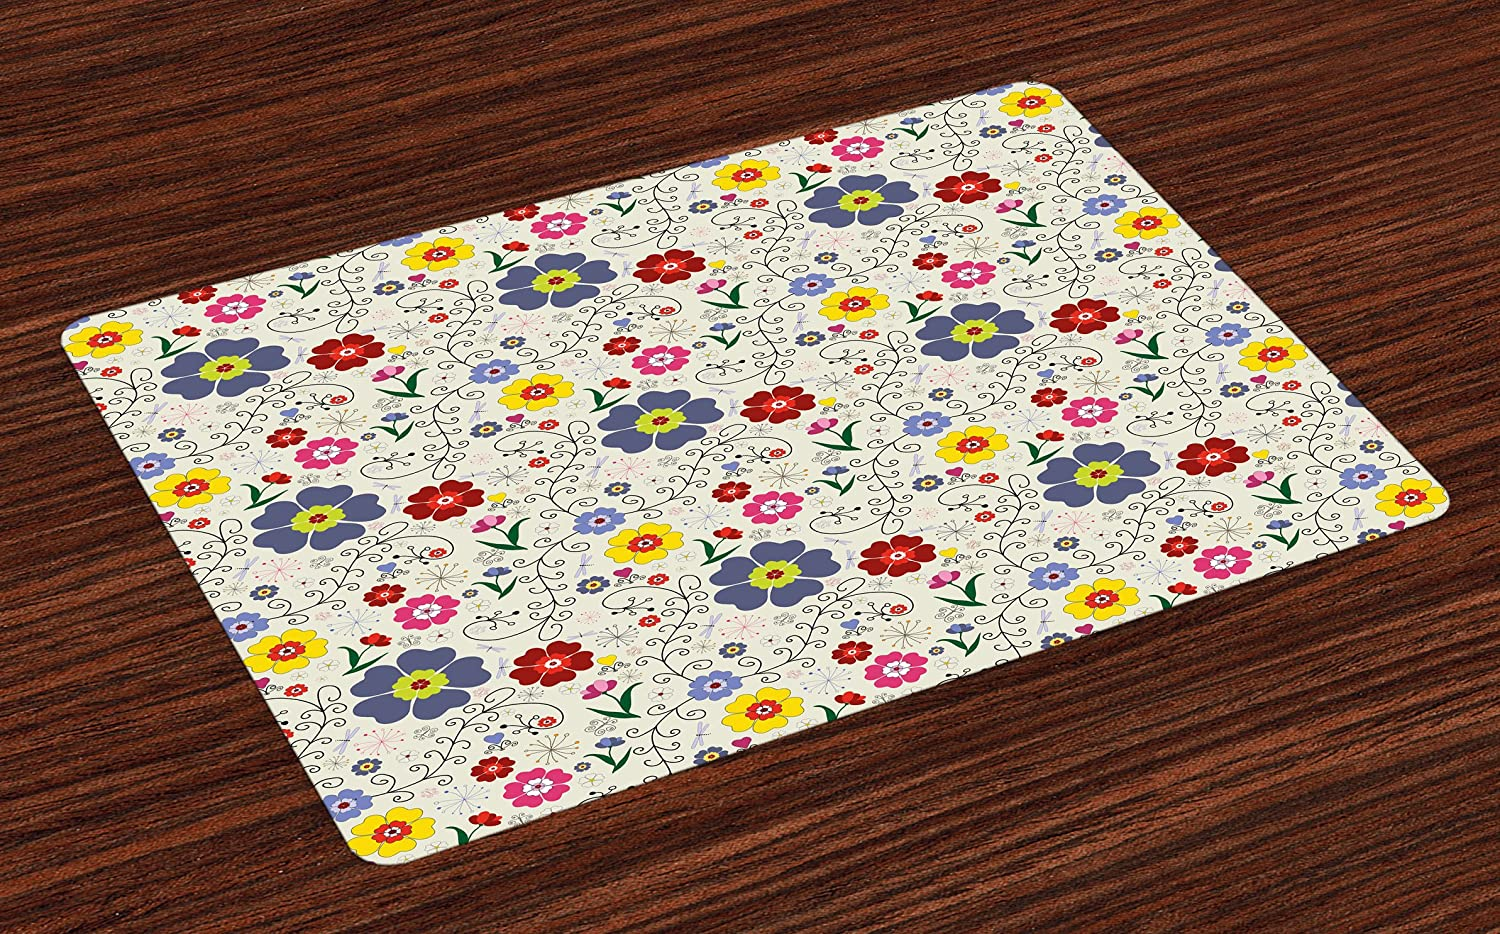 Ambesonne Floral Place Mats Set of 4, Flower Pattern with Butterflies and Dragonflies Colorful Spring Nature Illustration, Washable Fabric Placemats for Dining Room Kitchen Table Decor, Multicolor